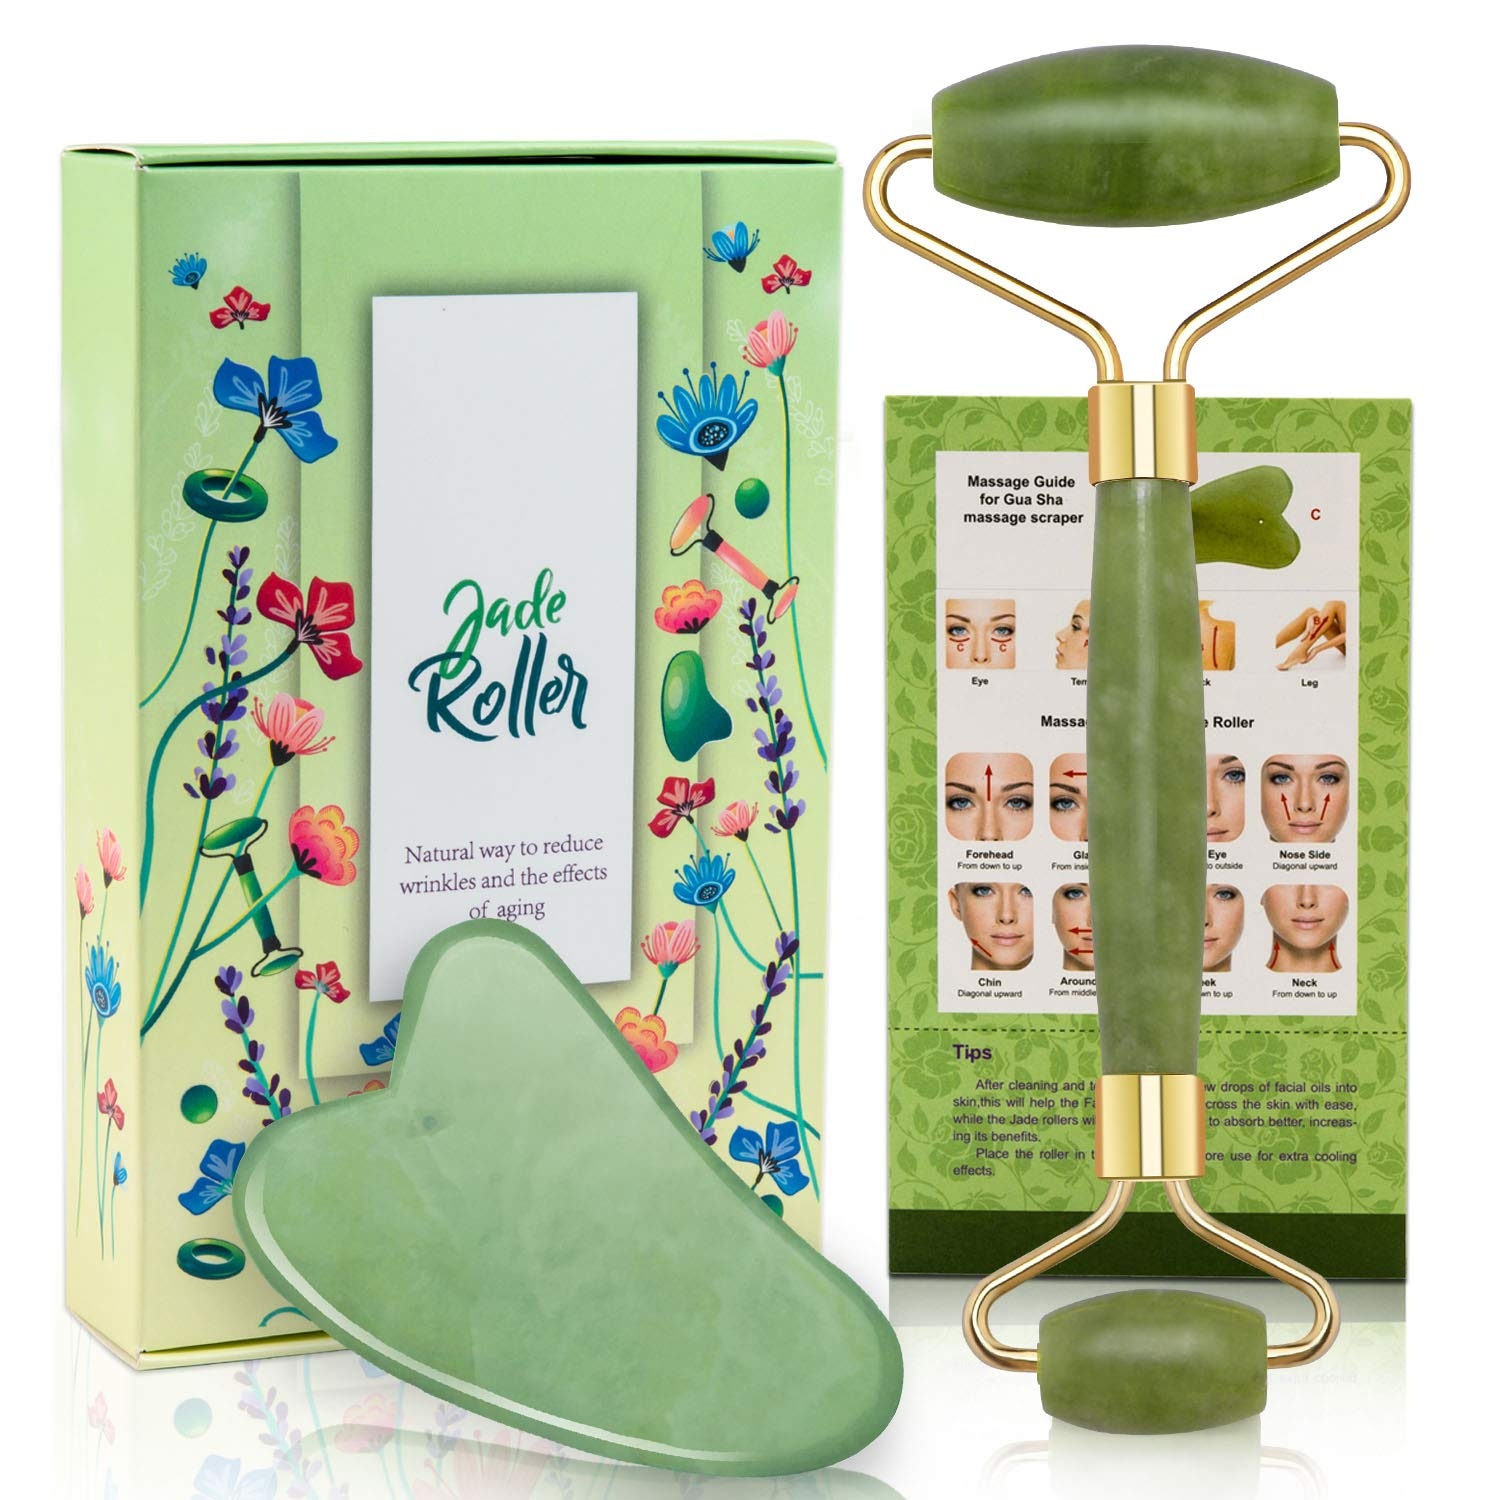 Jade Roller and Gua Sha Tool Set, Natural Real Jade Roller for Face, Beauty Jade Facial Roller Massage Tool for Rejuvenate Skin, Anti-wrinkle, Anti Aging, No Squeaks, Green by Lulupaxton